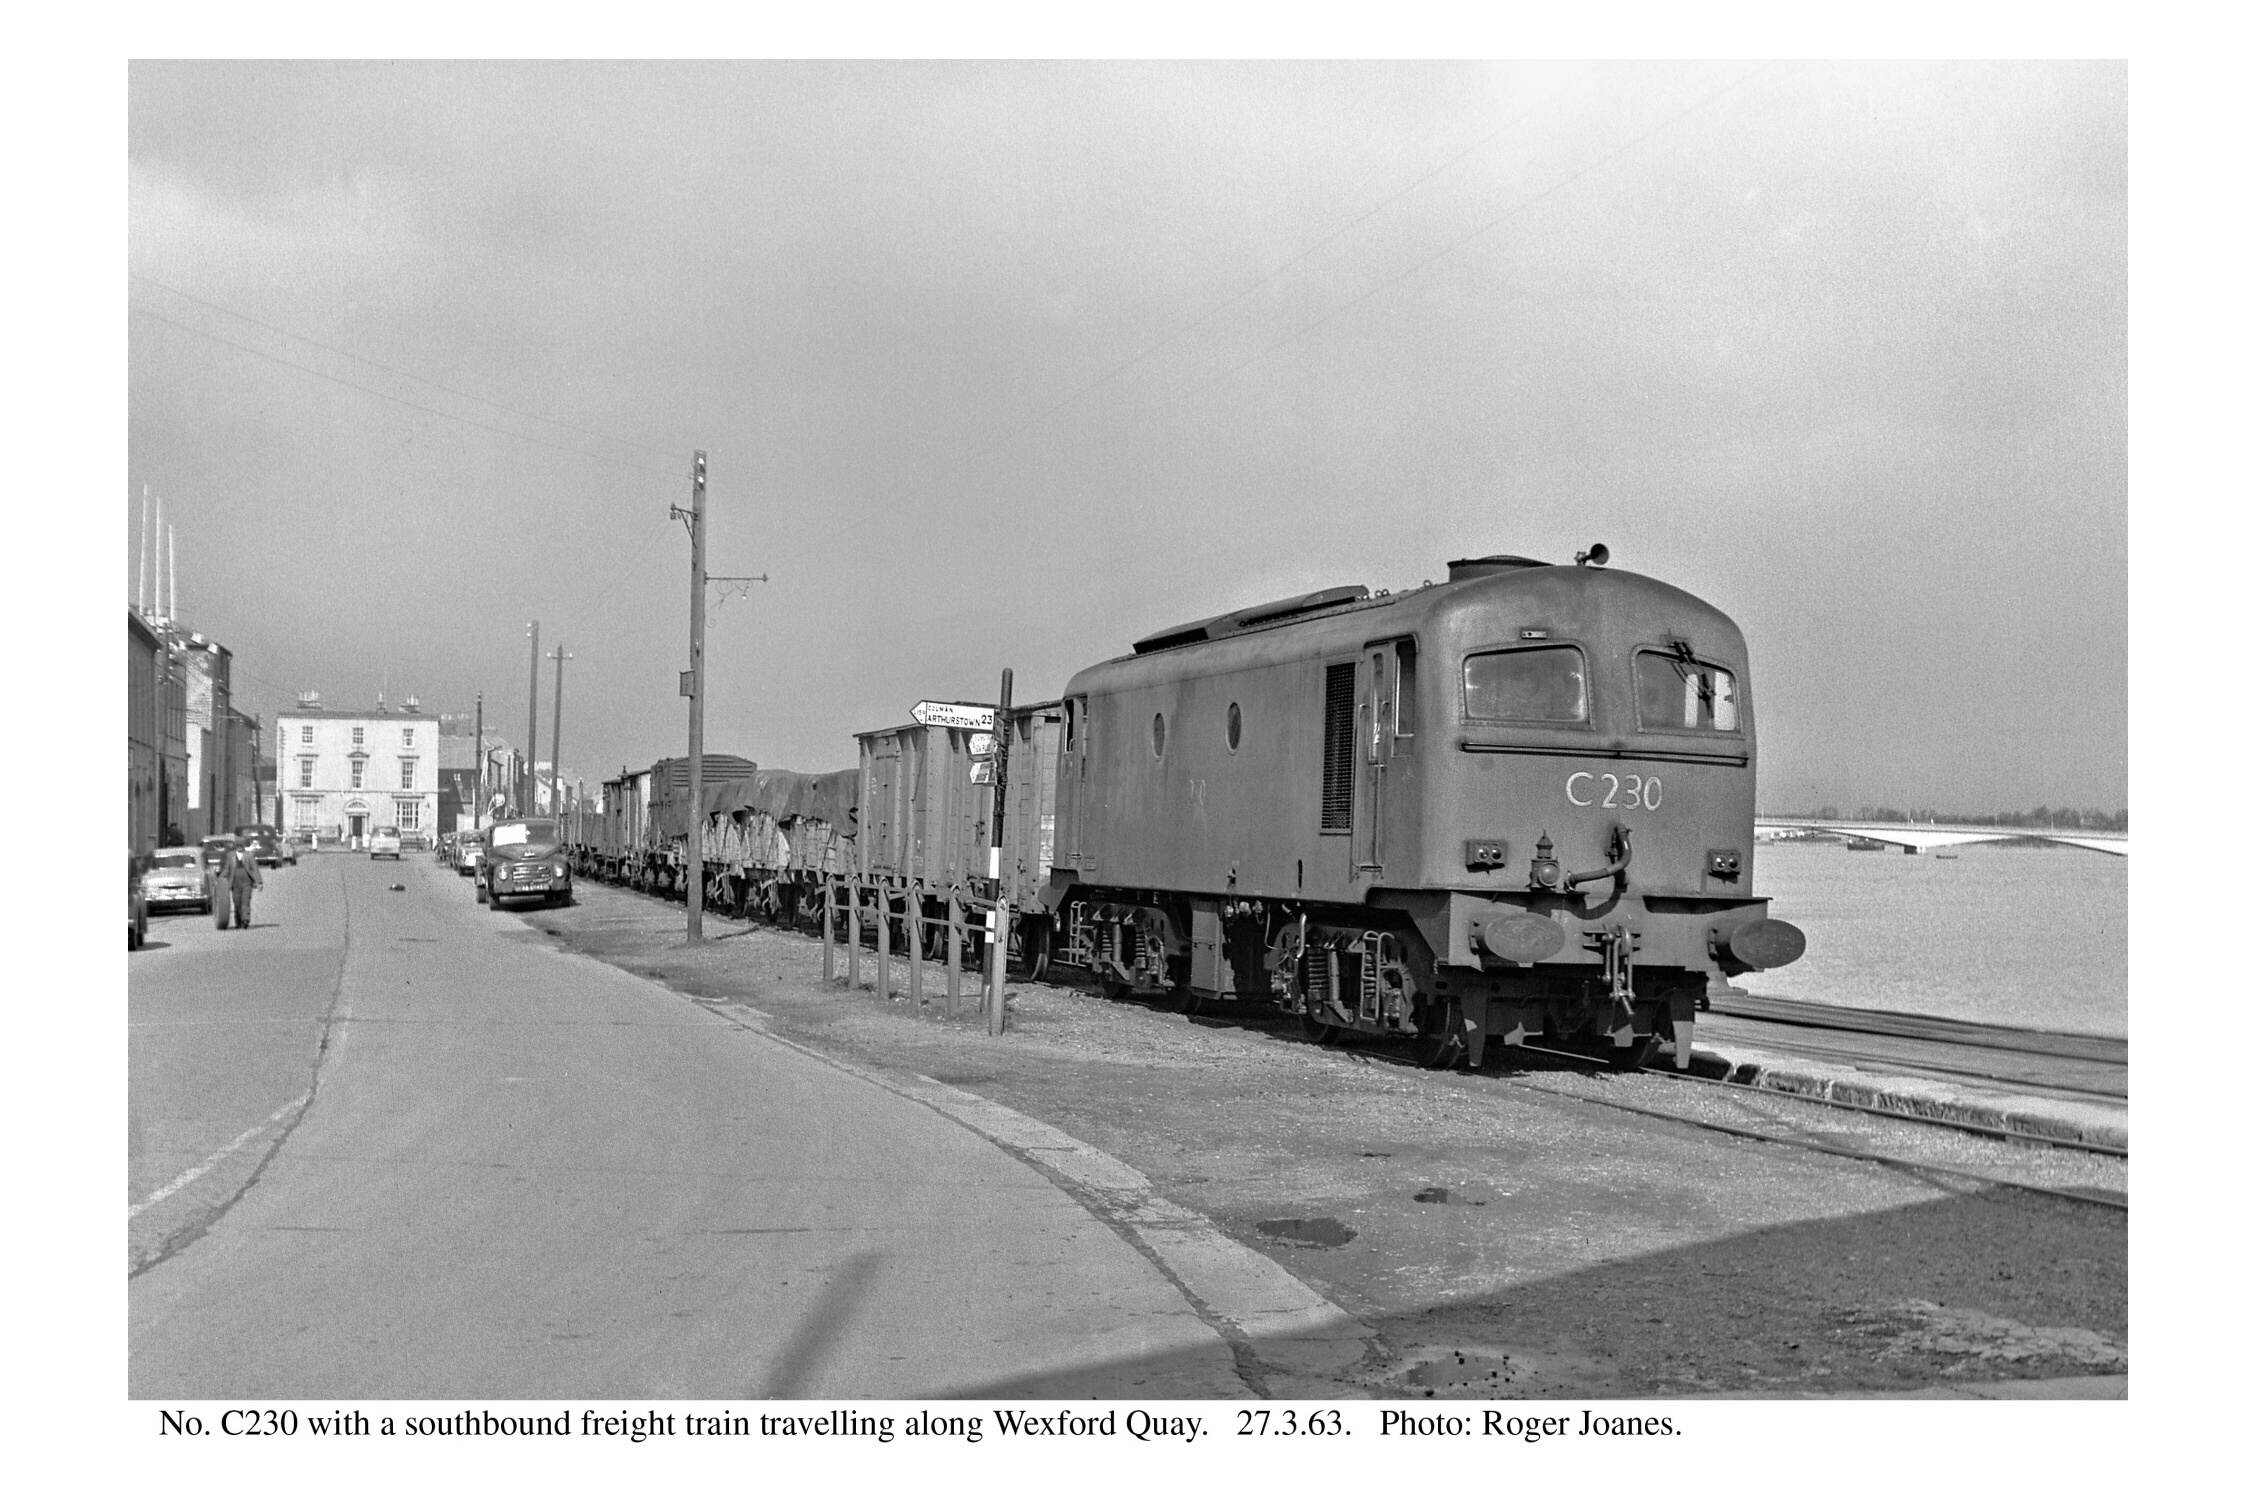 Wexford Quay. C230 southbound freight train.